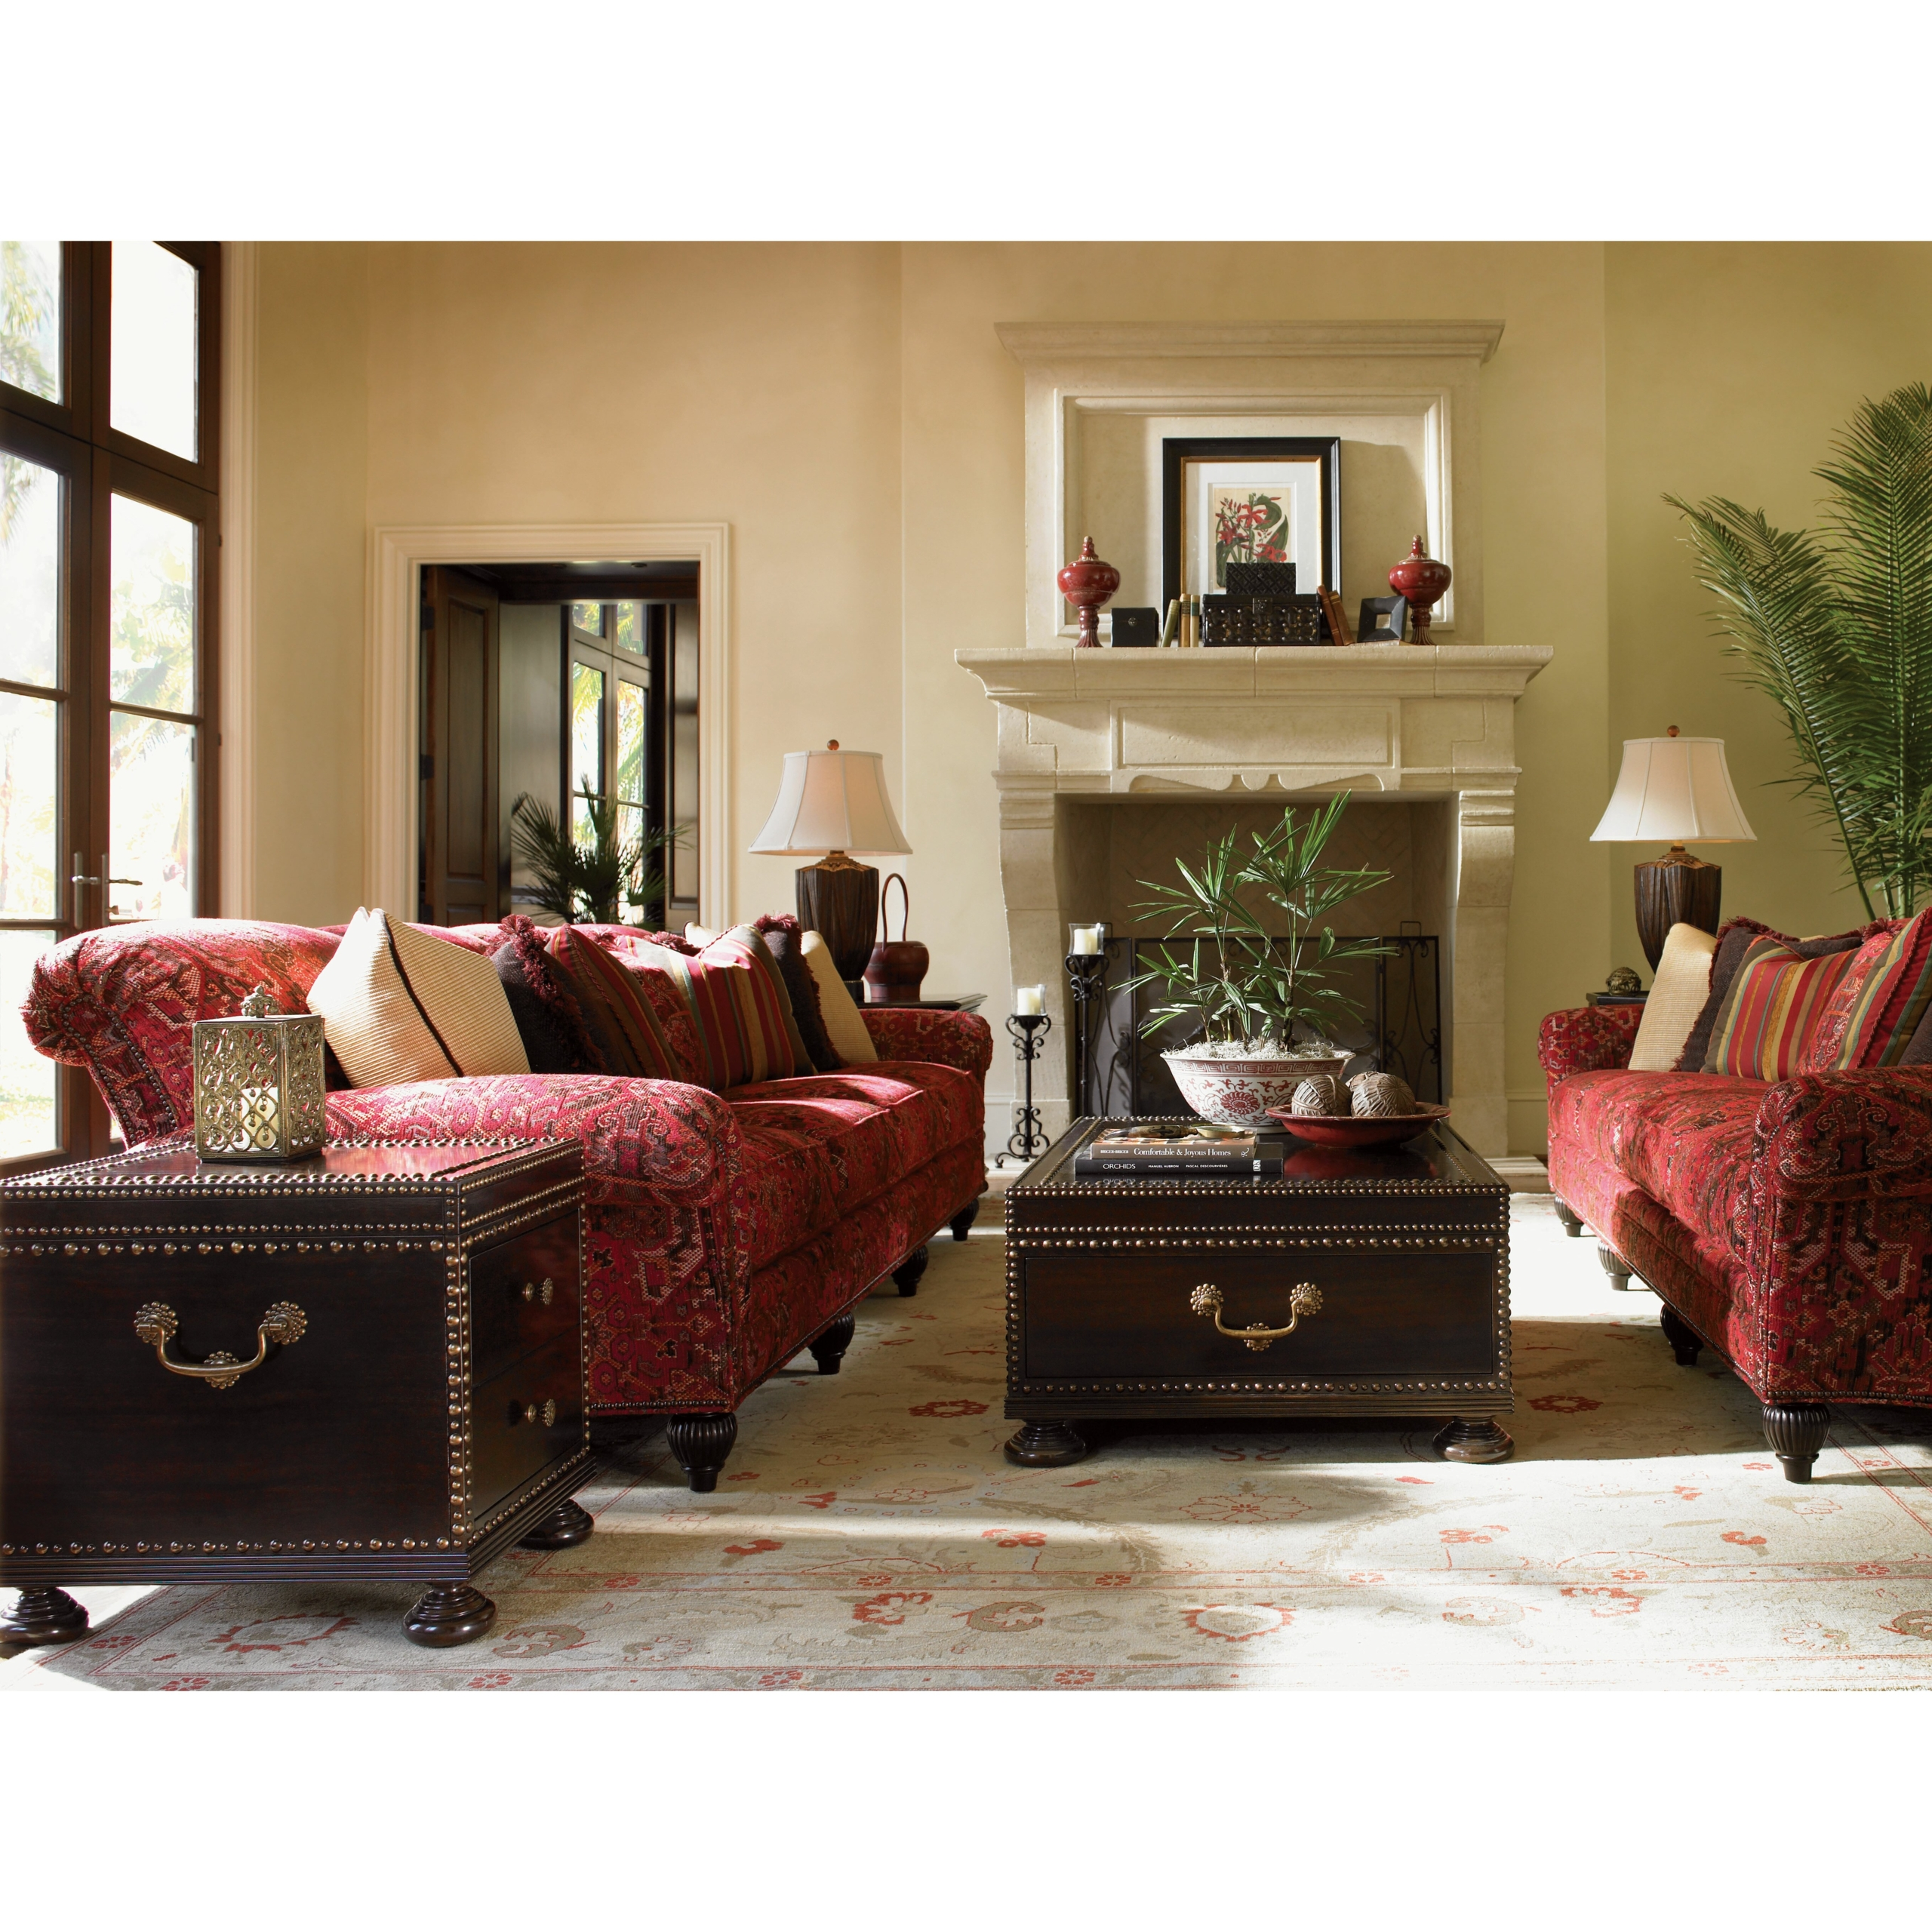 Tommy Bahama Decorating Ideas You Ll Love In 2021 Visualhunt